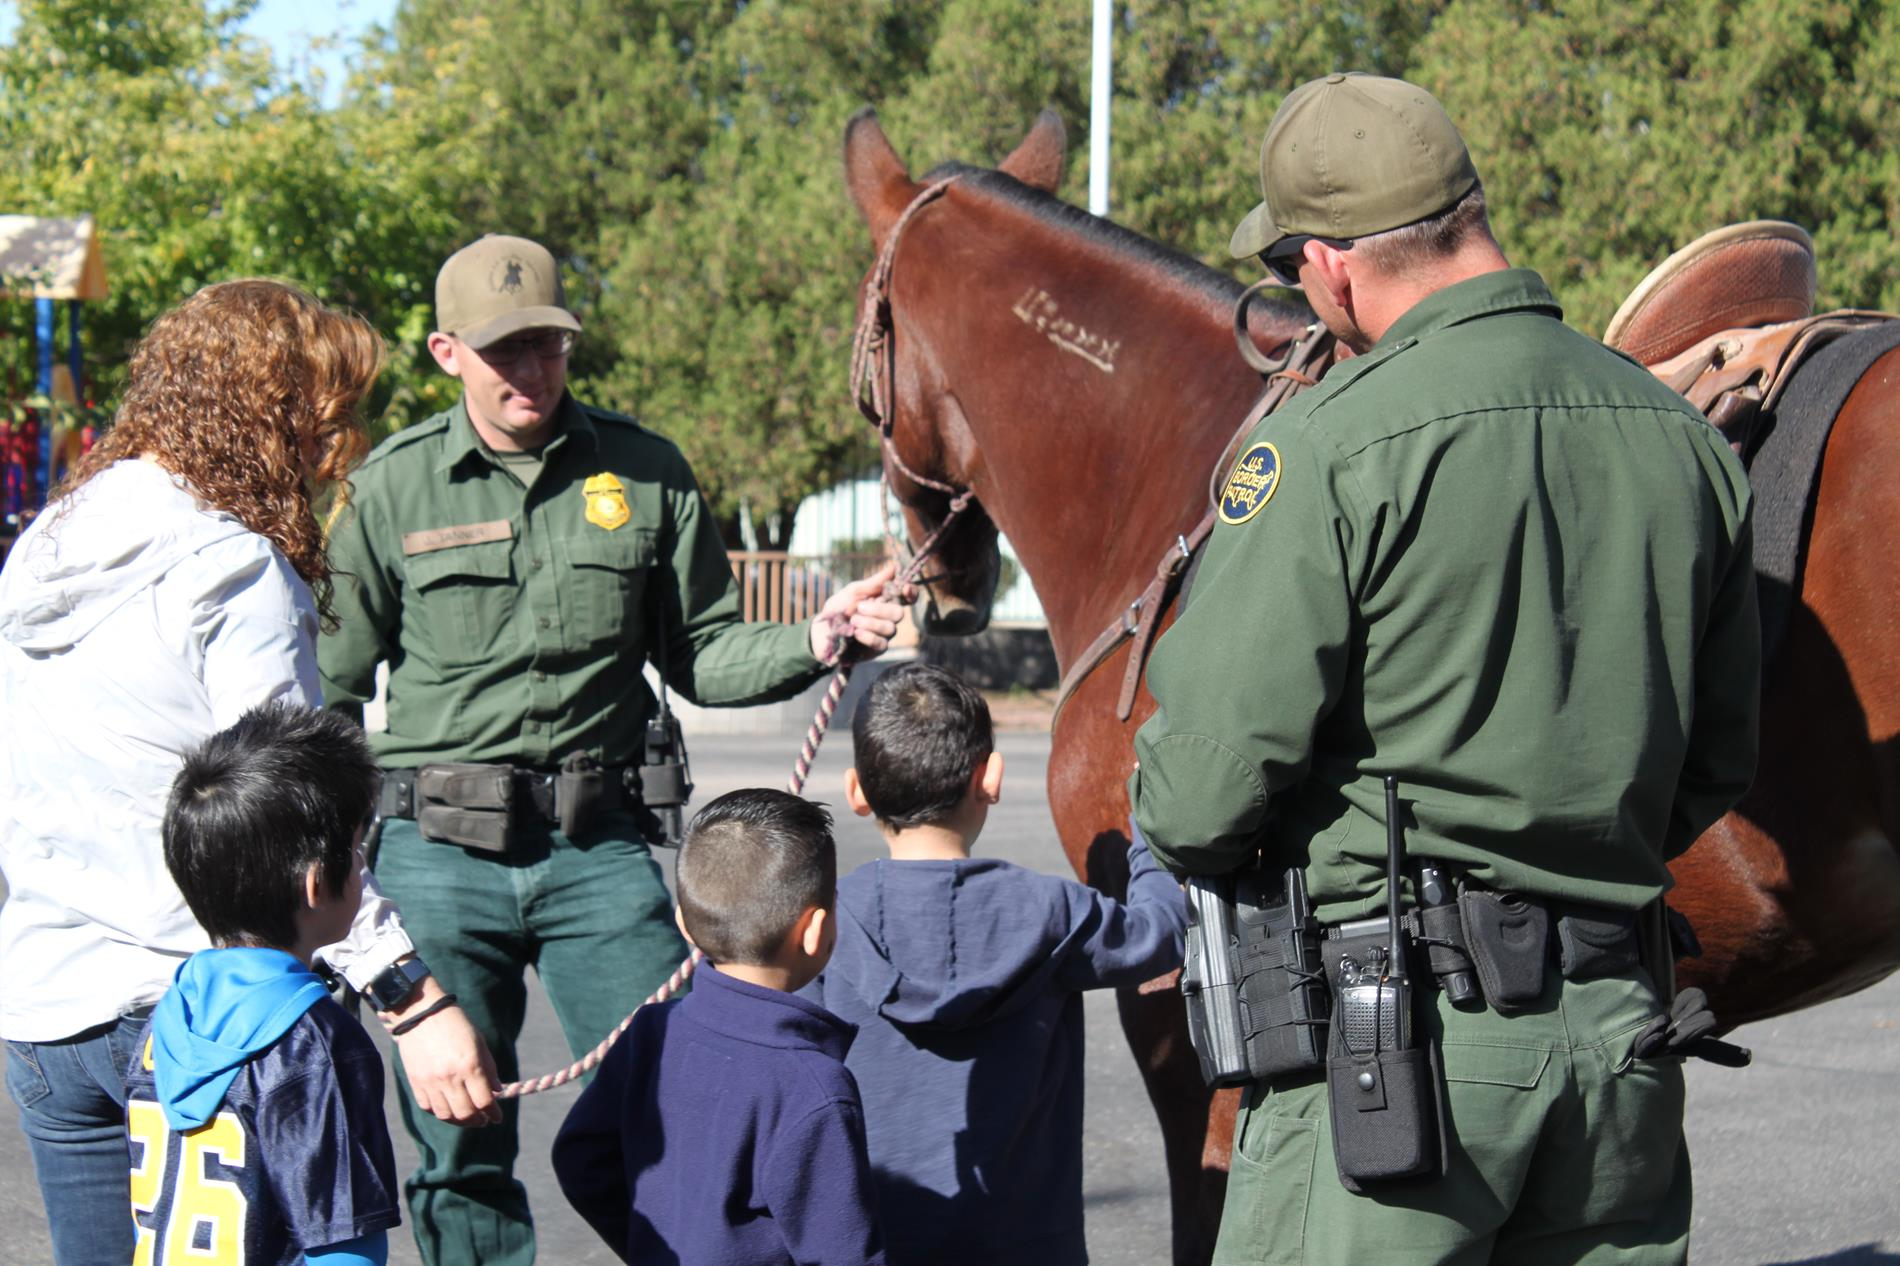 Students with a horse and Border Patrol